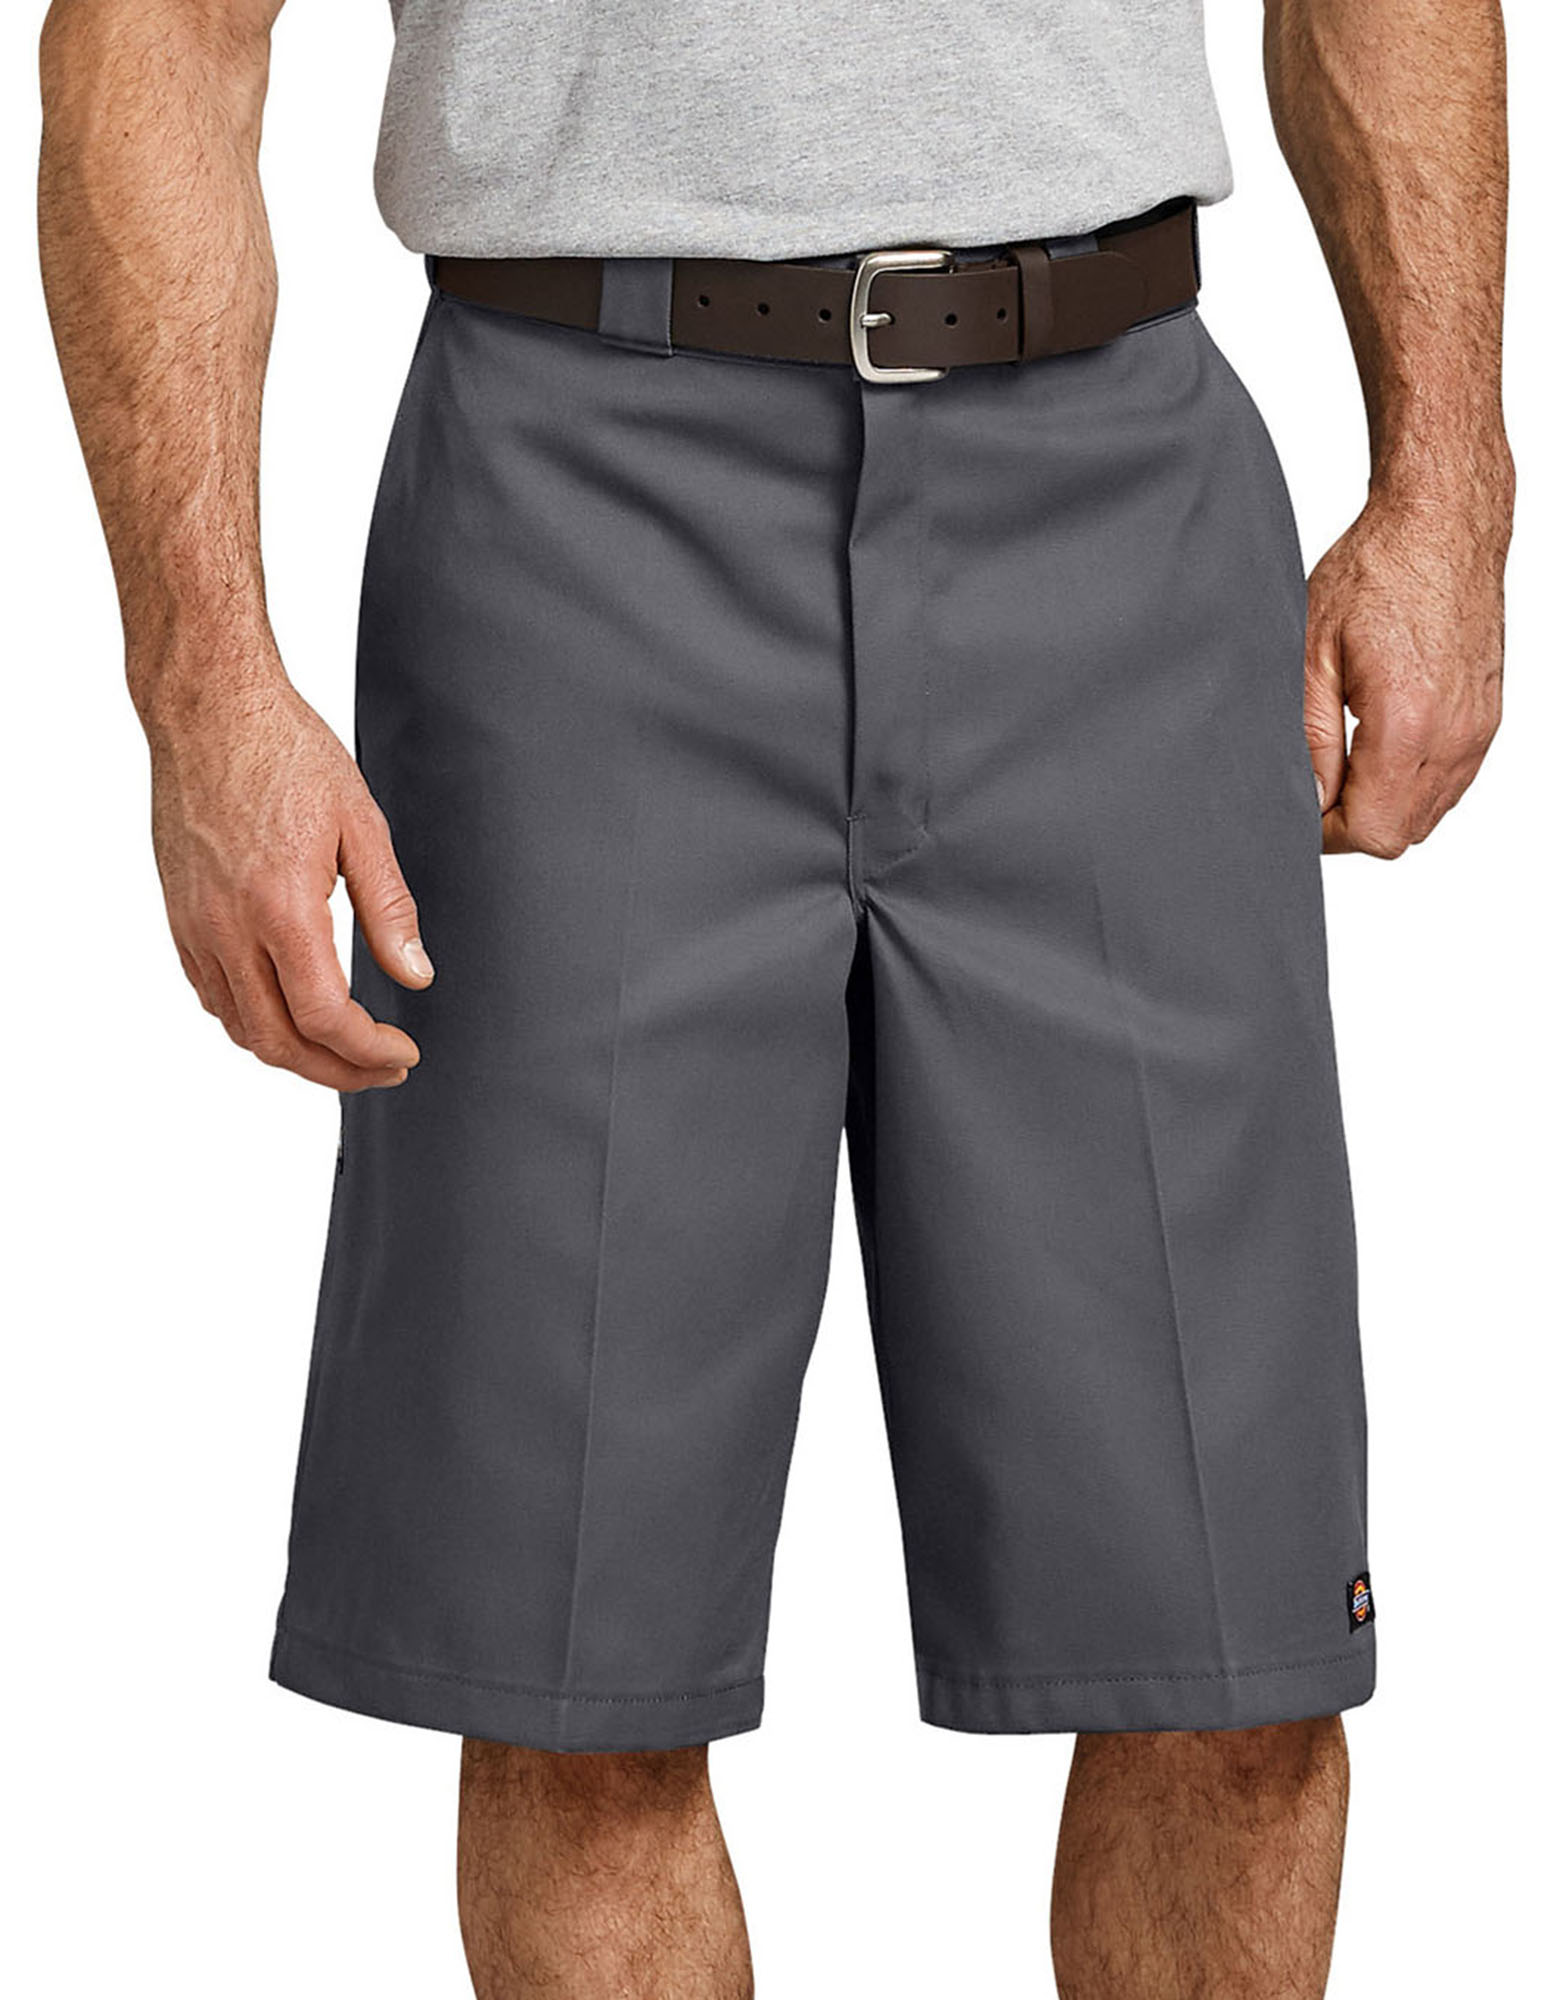 "13"" Loose Fit Multi-Use Pocket Work Shorts - Graphite Gray (GA)"